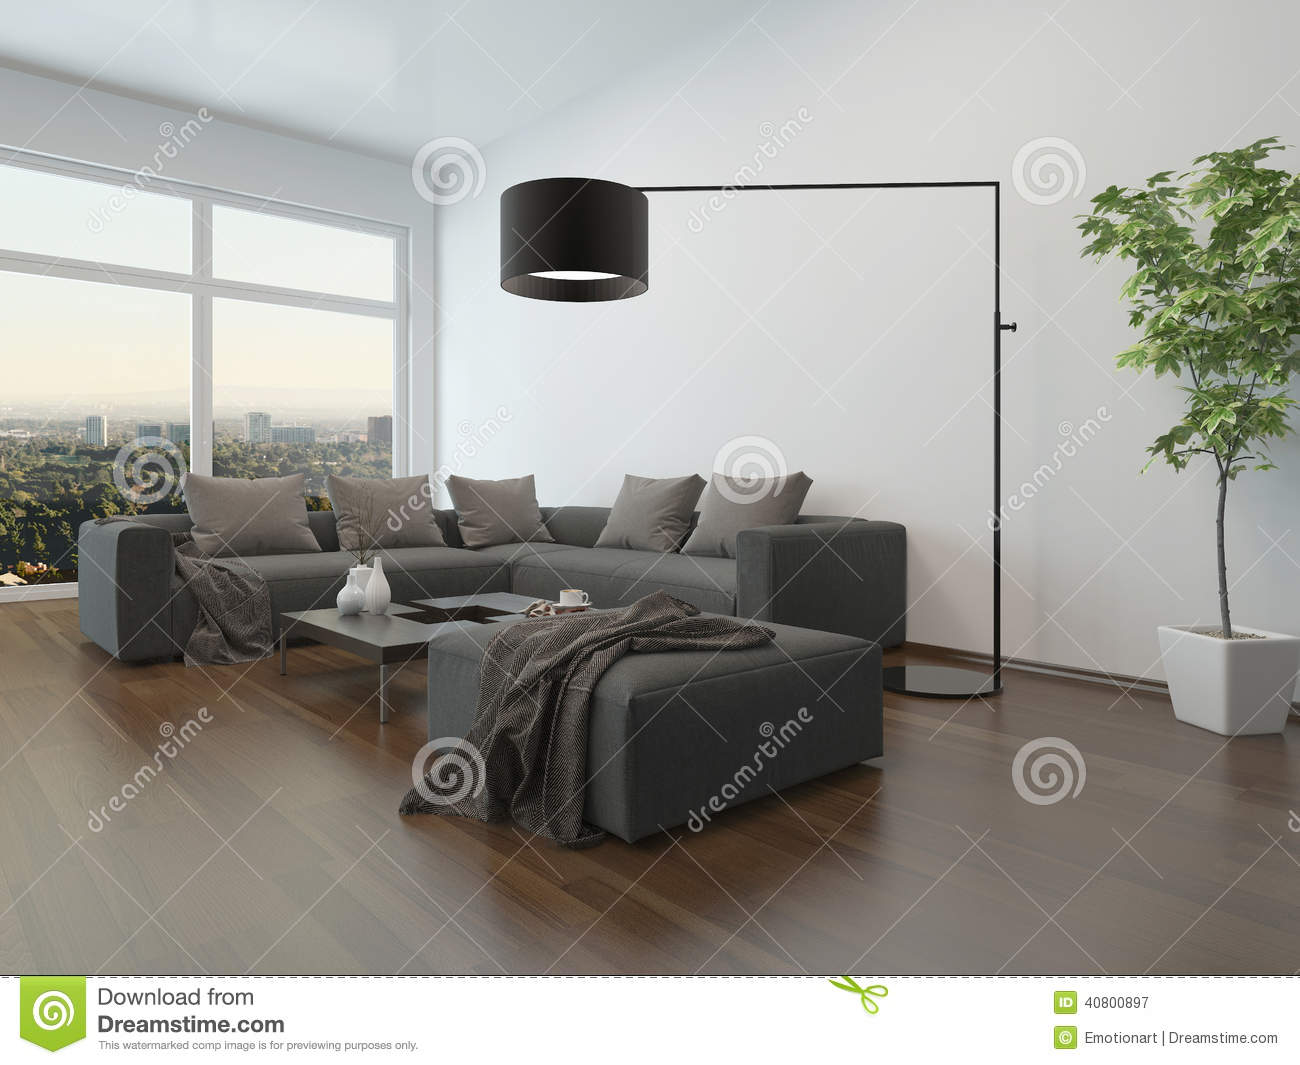 wohnzimmer innenw graue couch und stehlampe stock. Black Bedroom Furniture Sets. Home Design Ideas